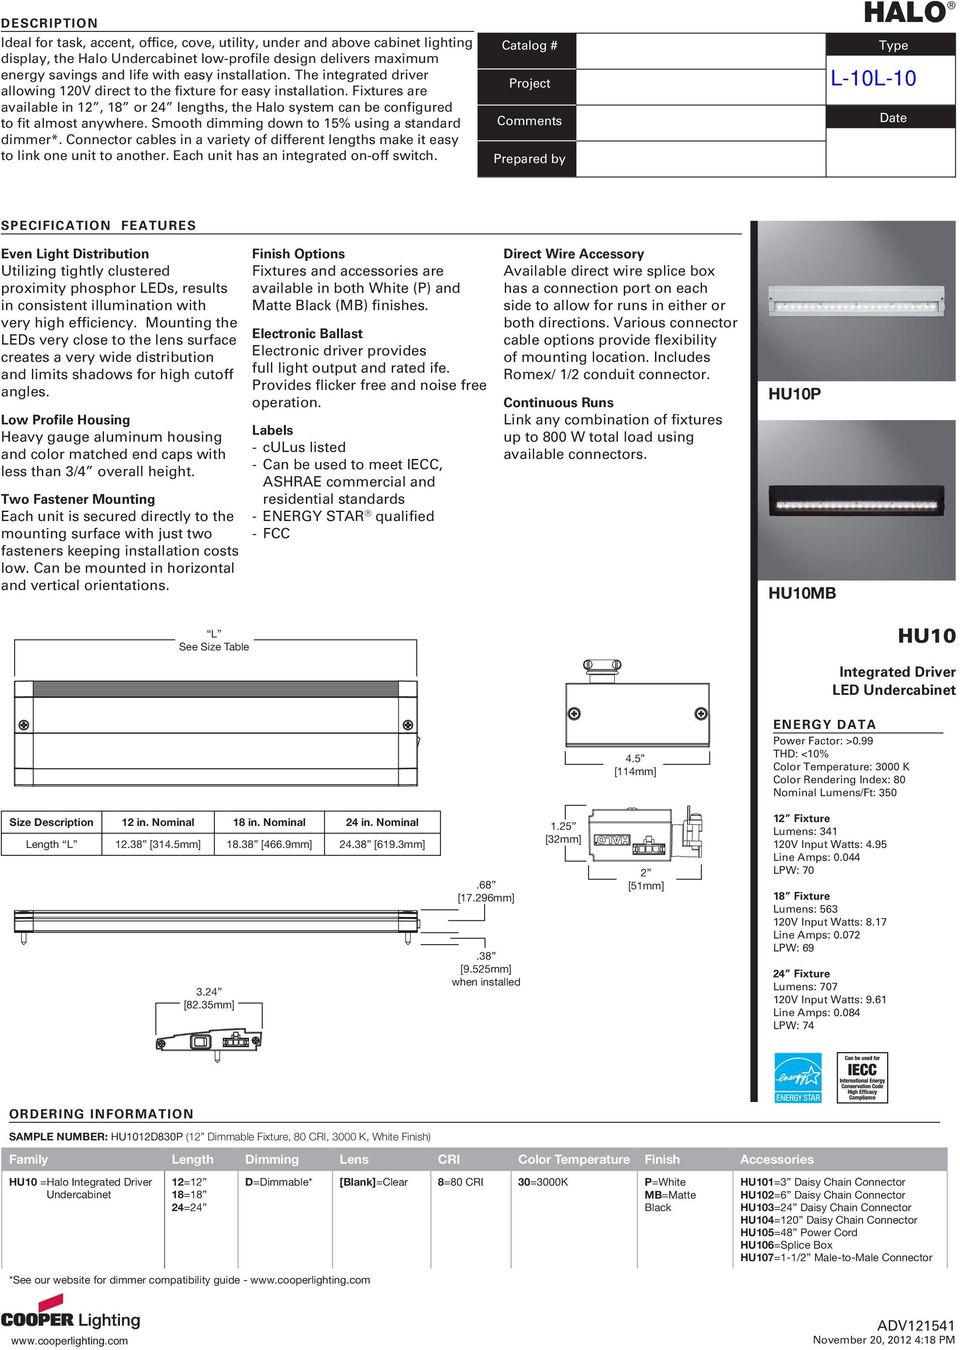 Type Project Options Modified Luminaire Fixture Epa Optional The Circuit And Pcb Layout Incompatibility Of 400led Audio Spectrum Smooth Dimming Down To 15 Using A Standard Dimmer Connector Cables In